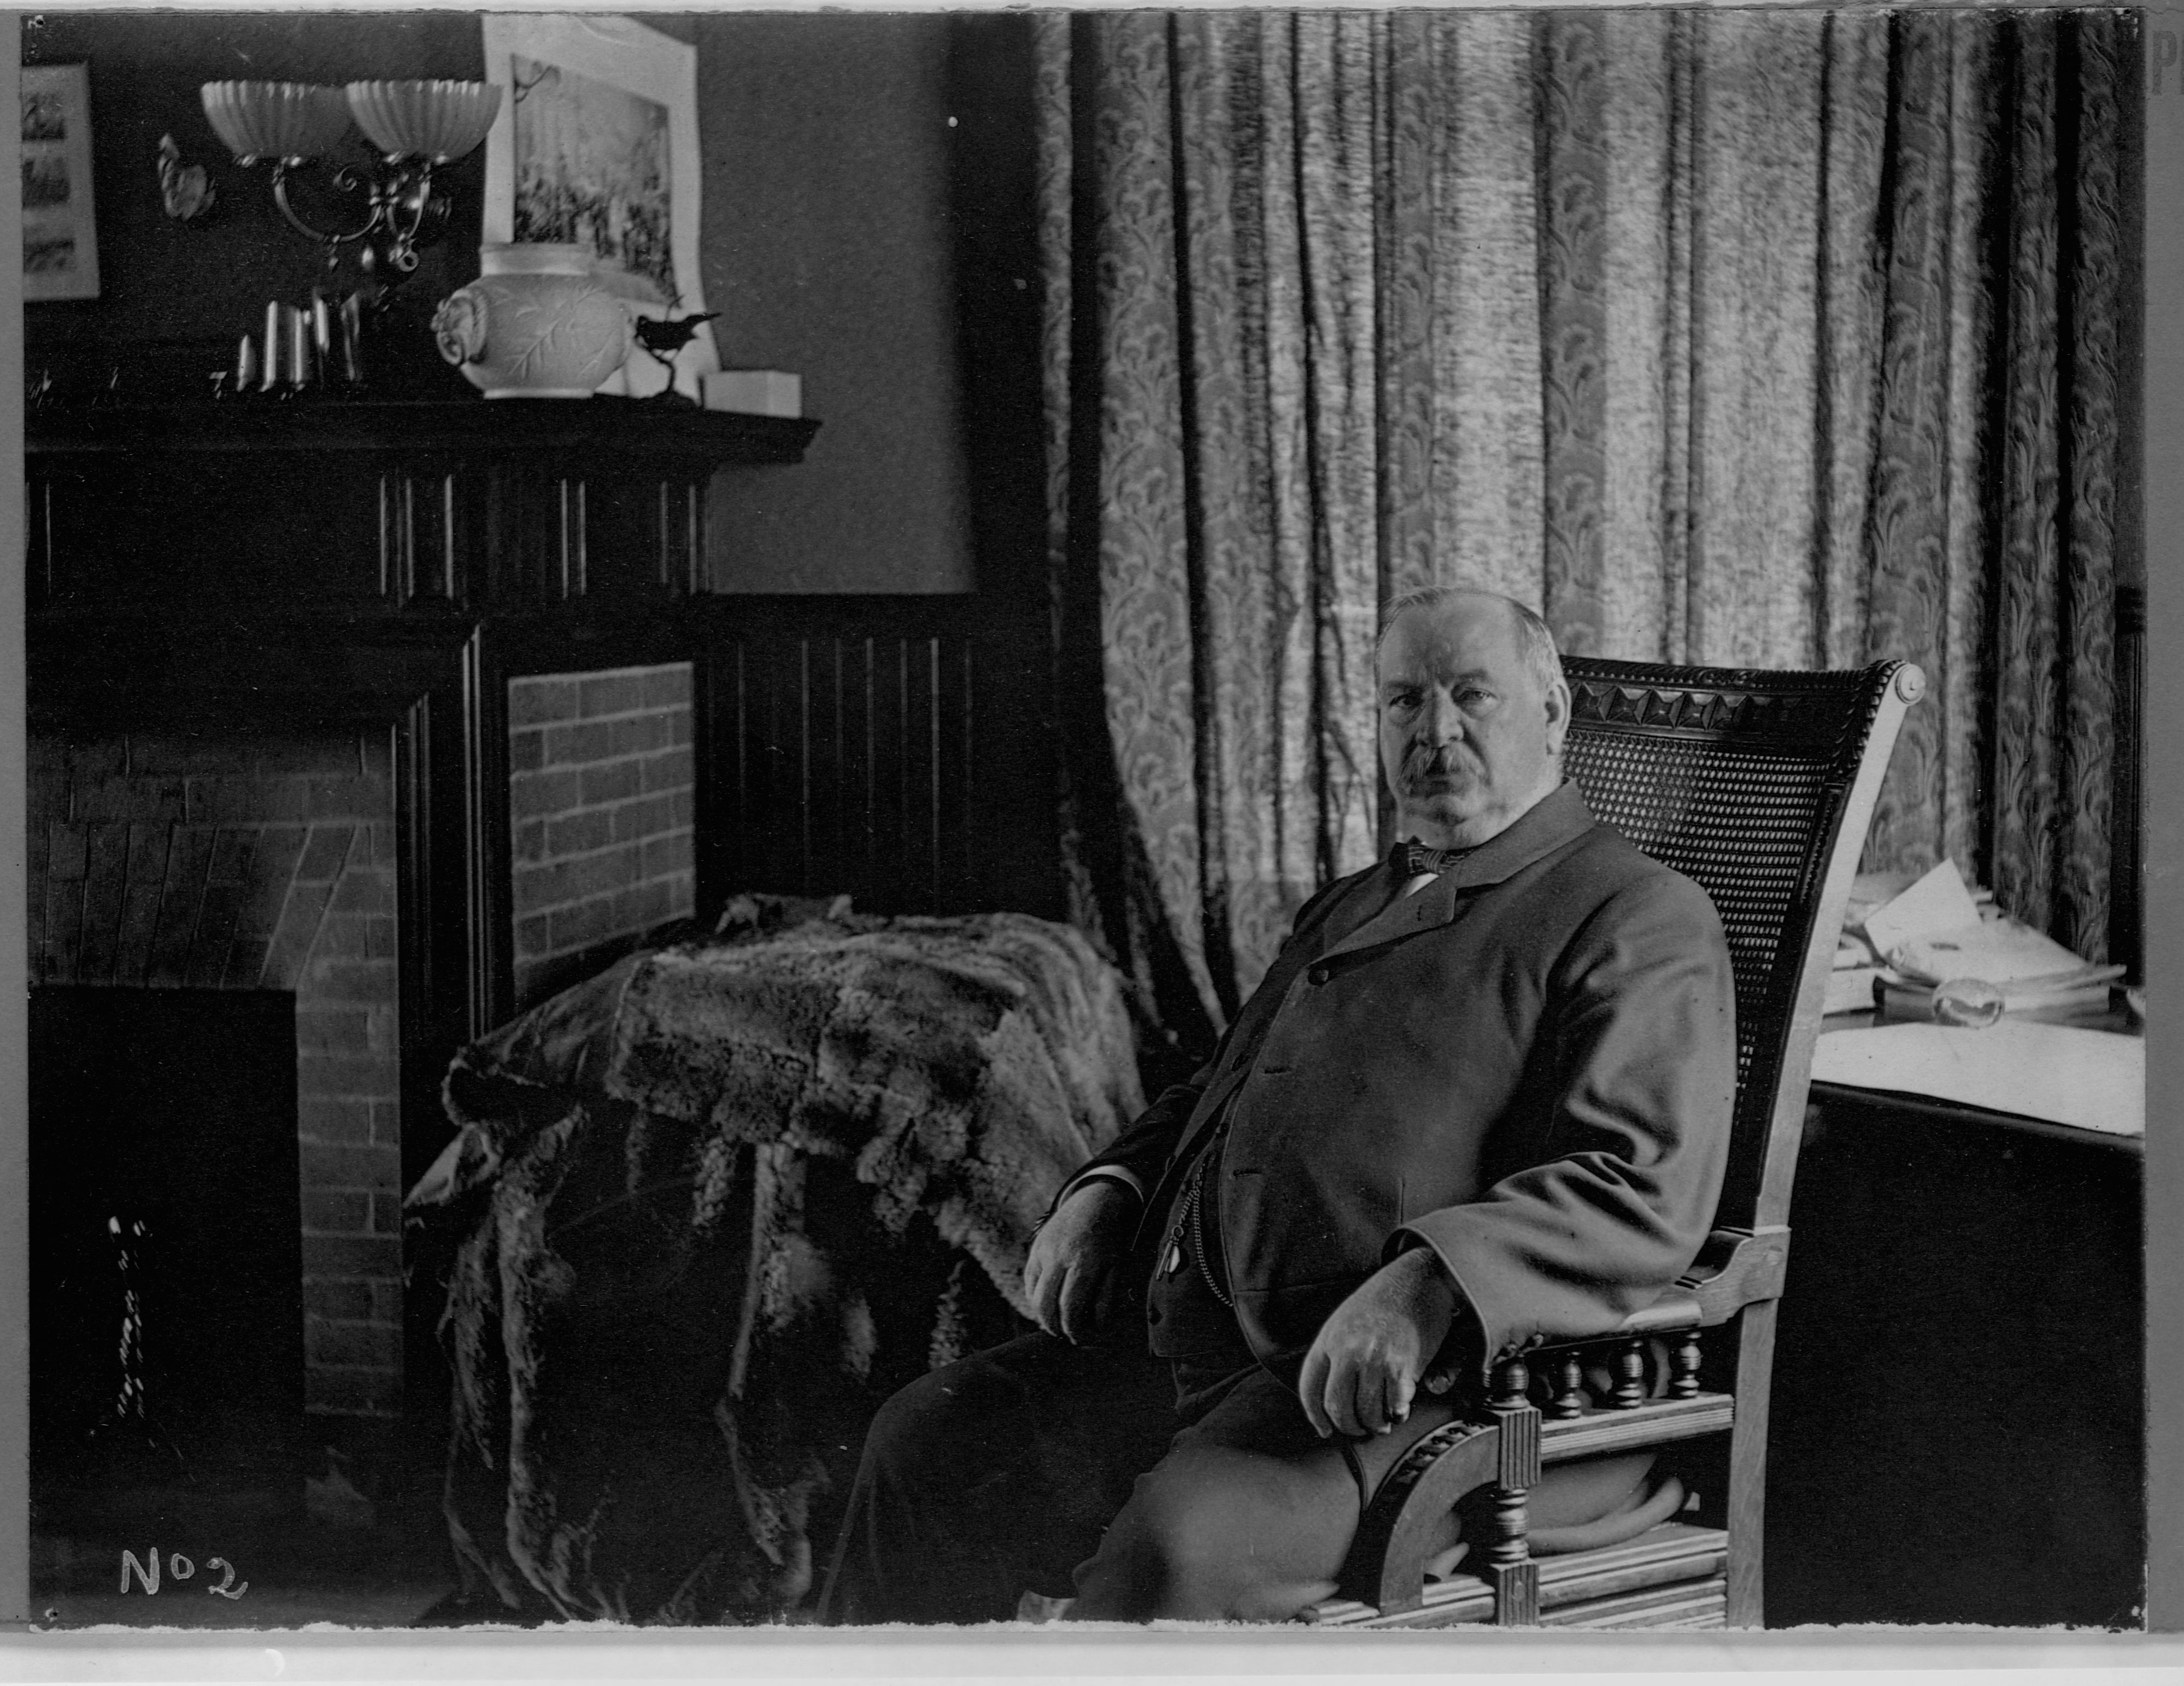 Grover Cleveland Relaxing by Fireplace